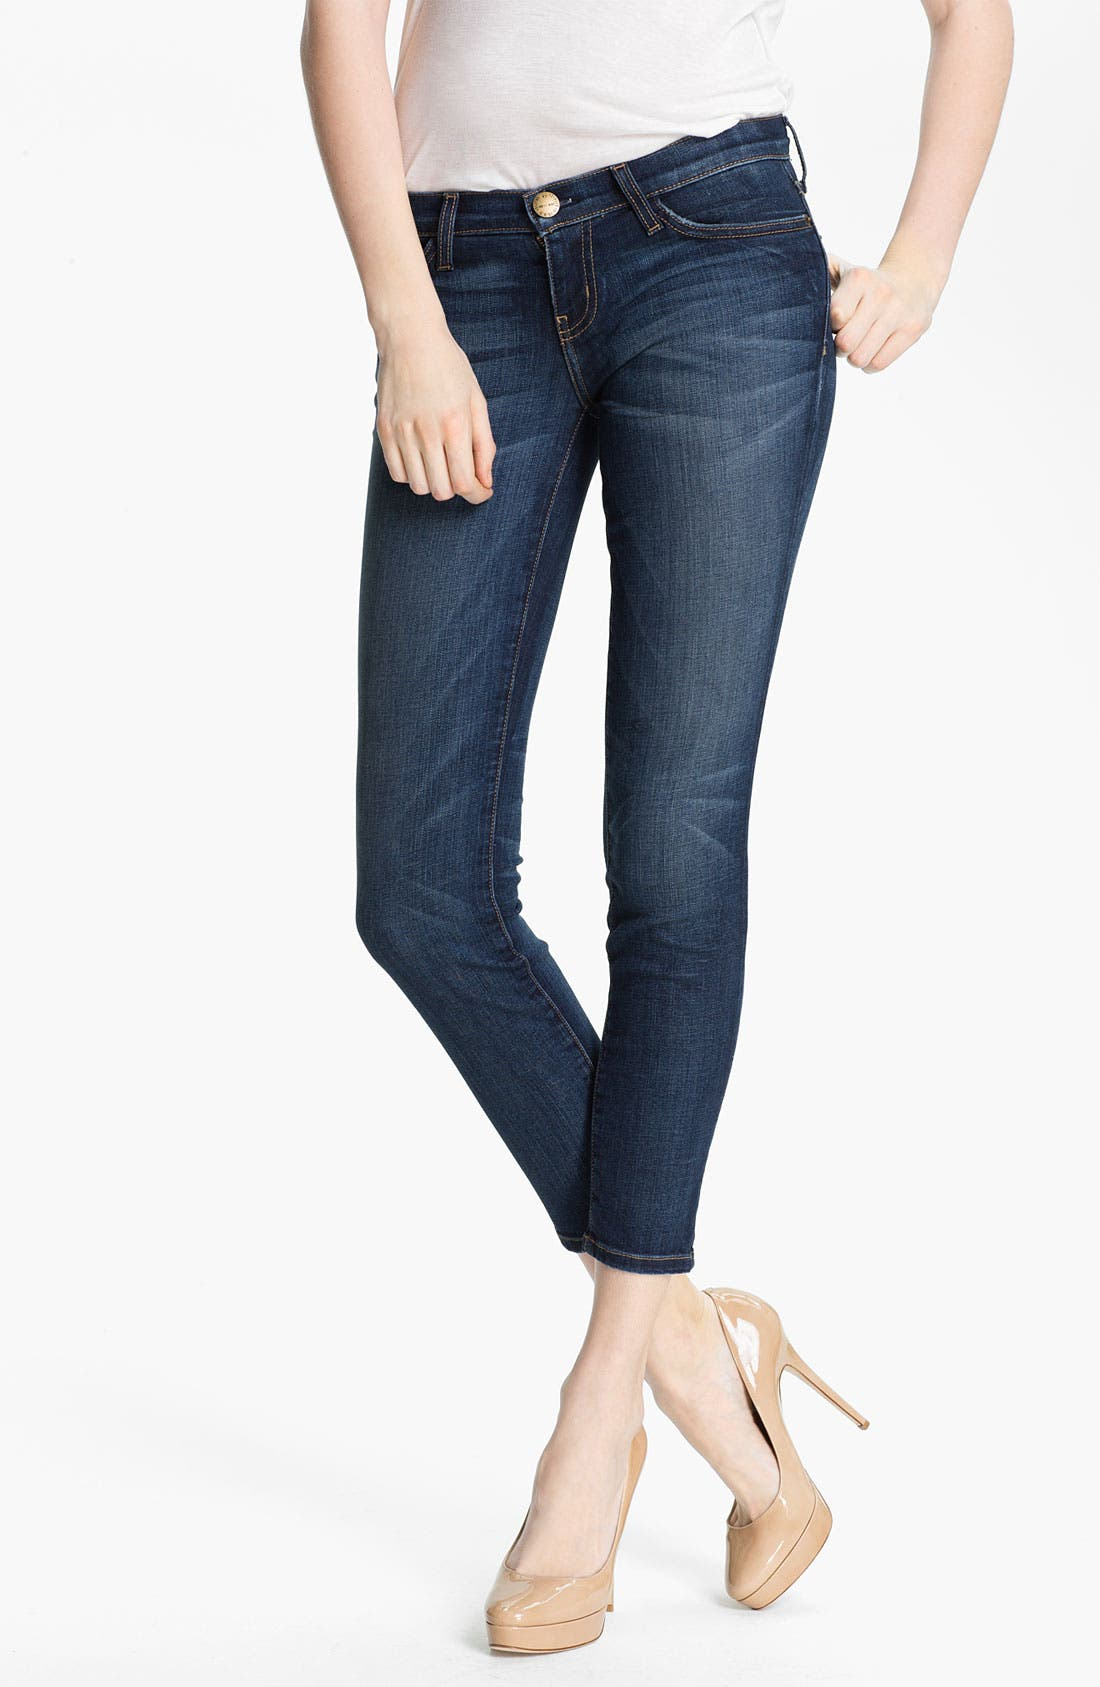 Main Image - Current/Elliott 'The Stiletto' Stretch Jeans (Townie)